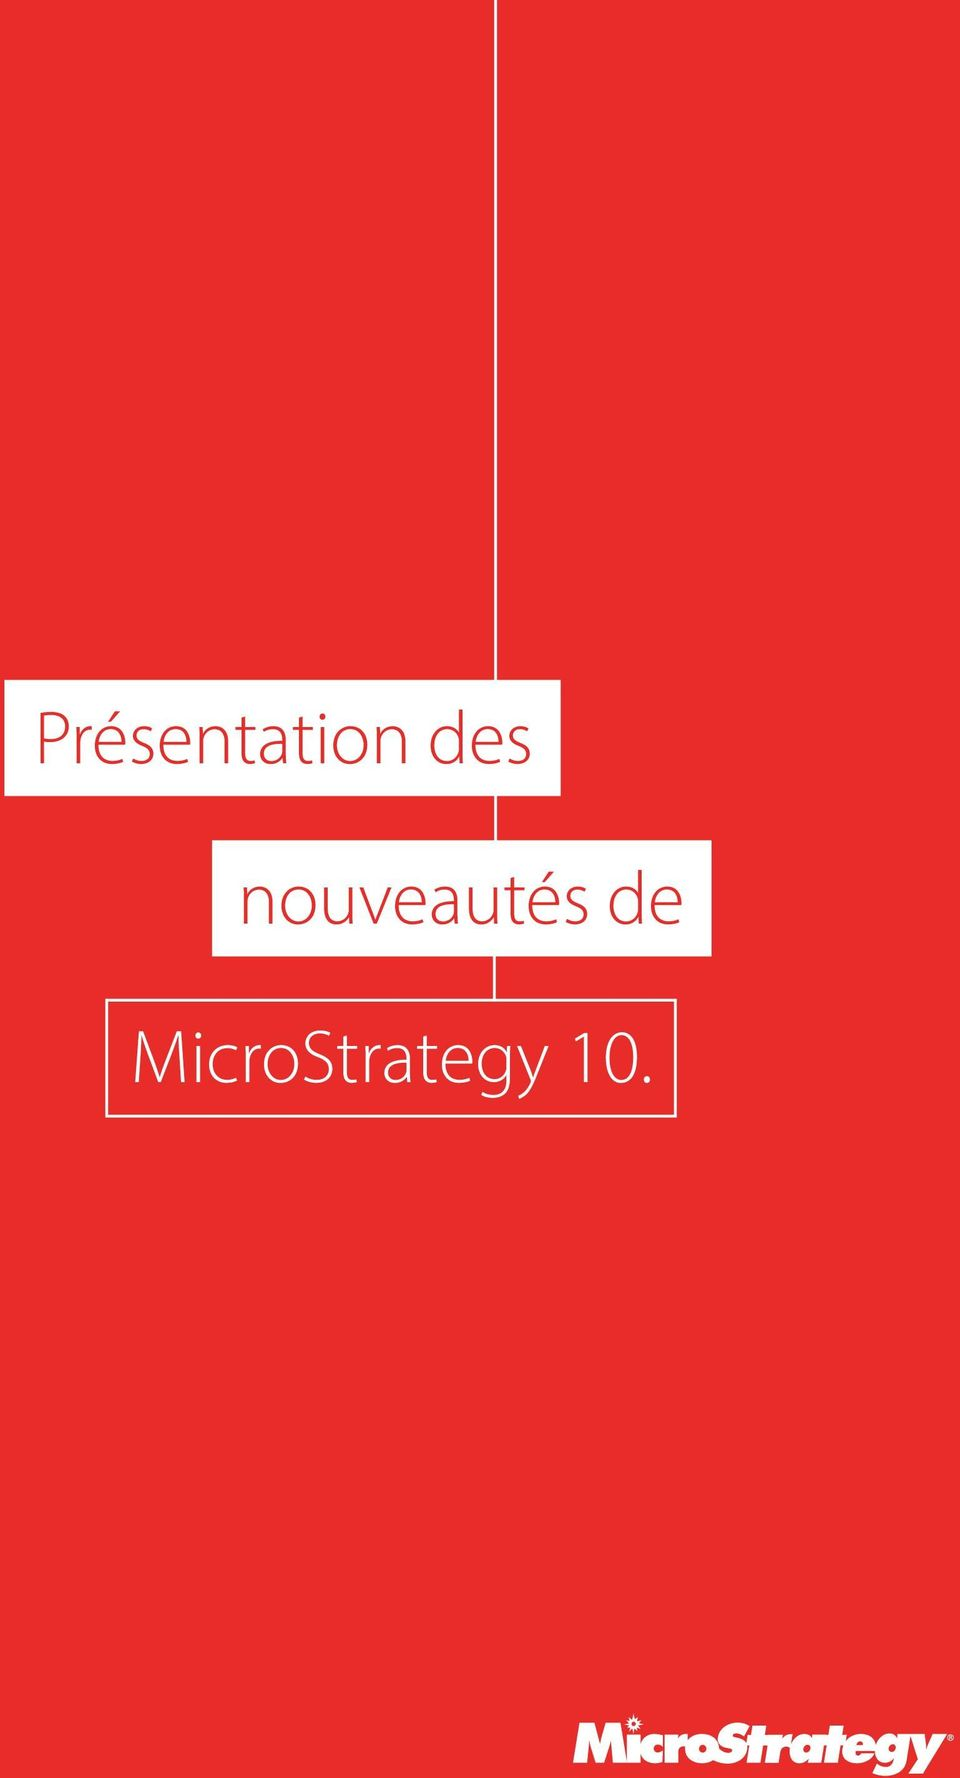 MicroStrategy 10.